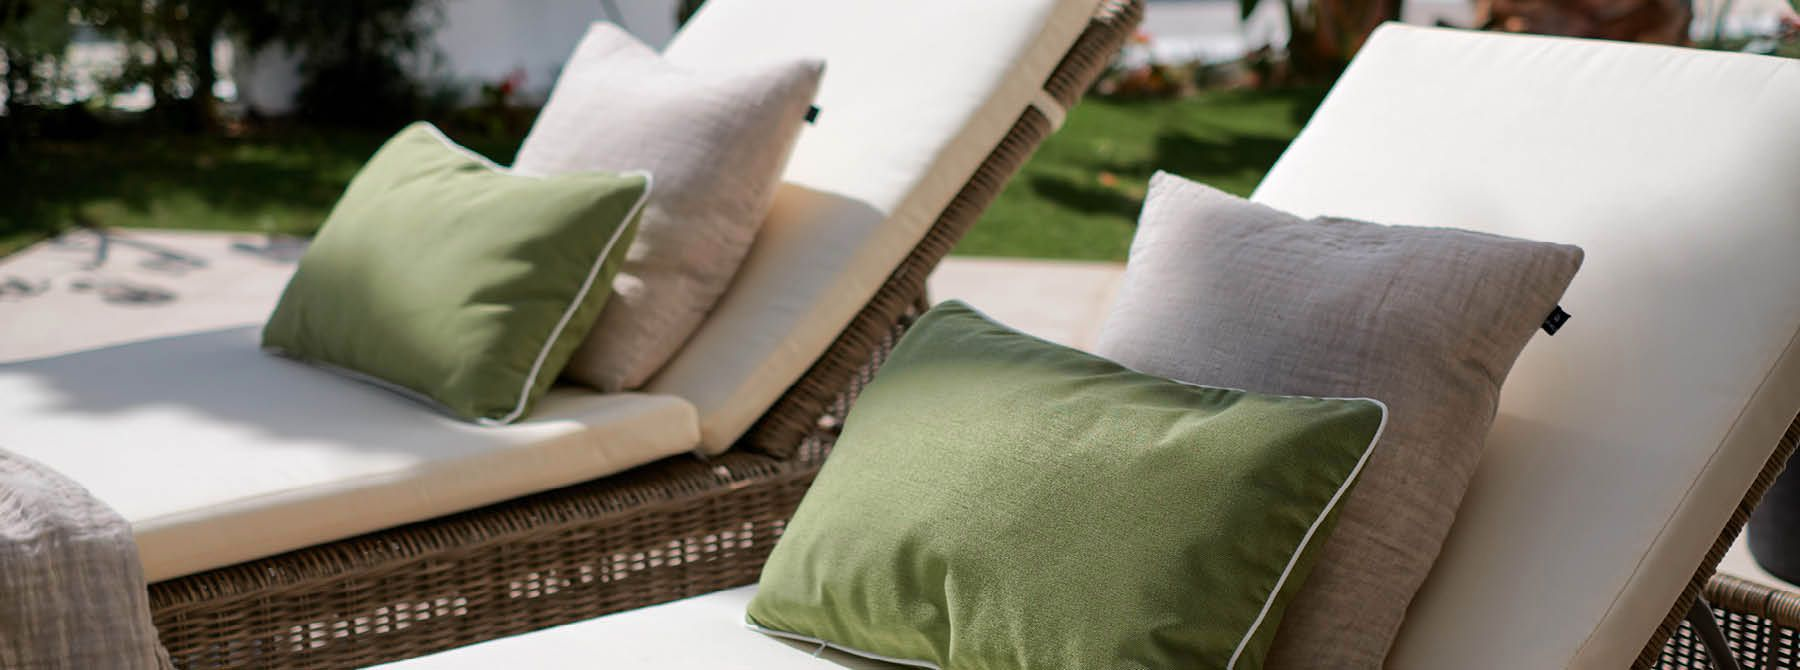 Pappelina Cushions - Made in Sweden